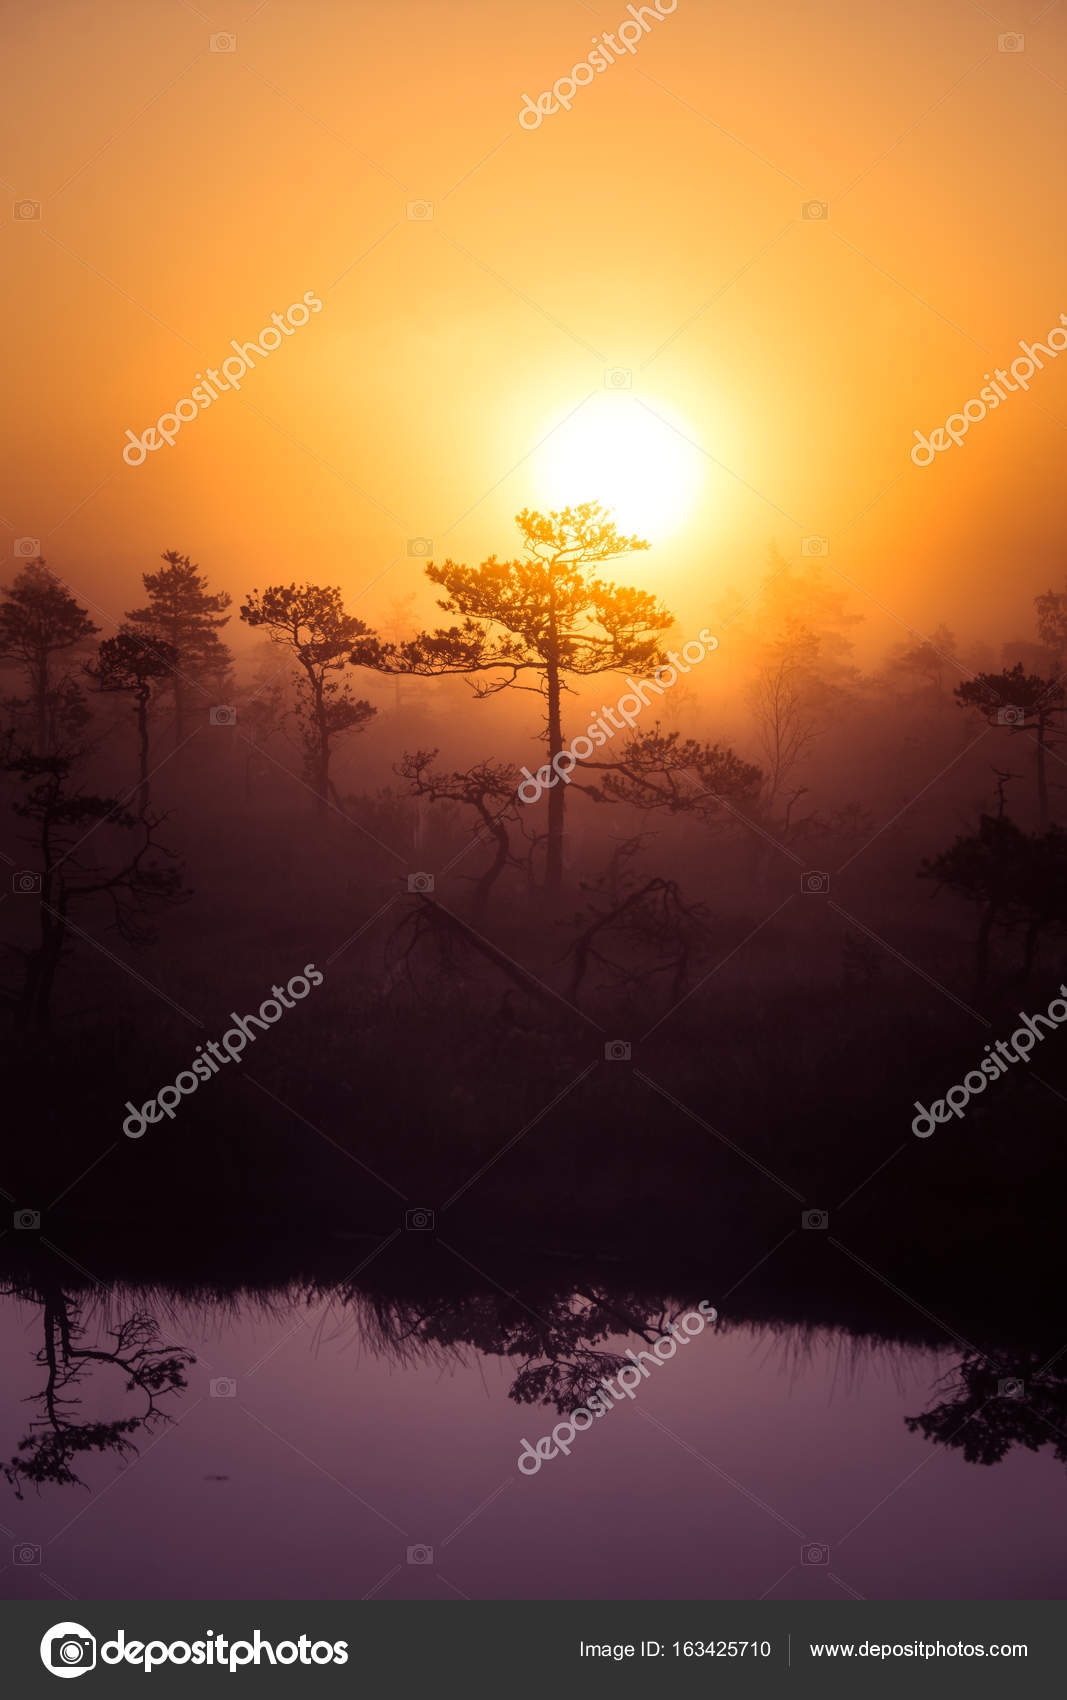 a beautiful, dreamy morning scenery of sun rising above a misty